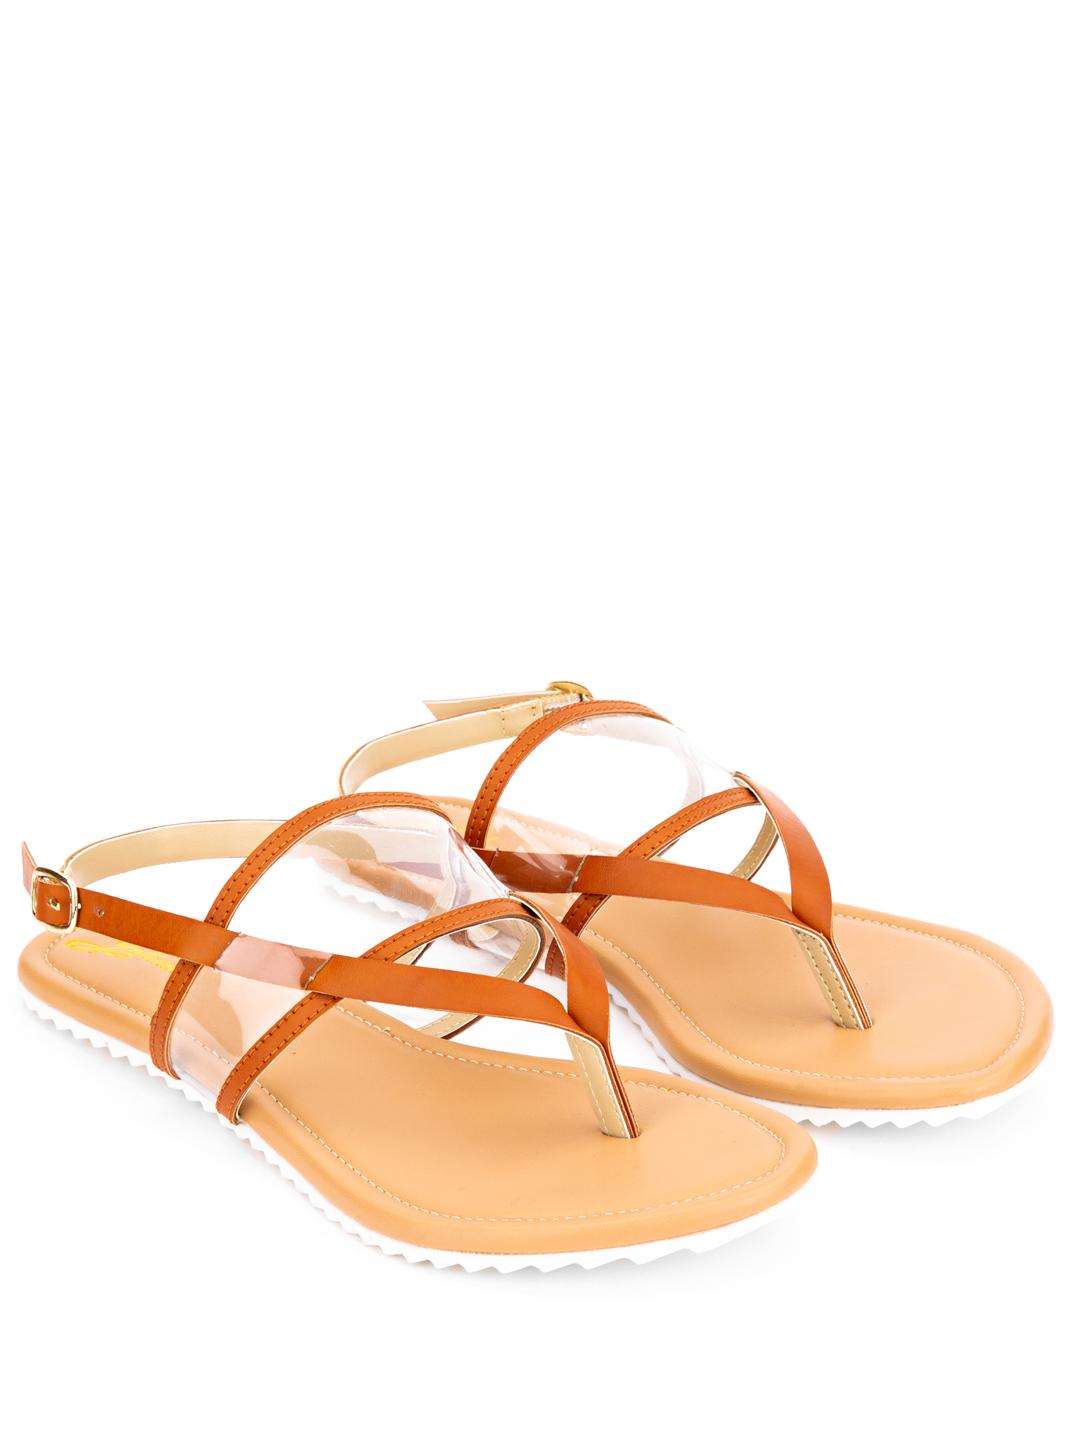 Yellow Soles Brown Clear Strap Flat Sandals 1